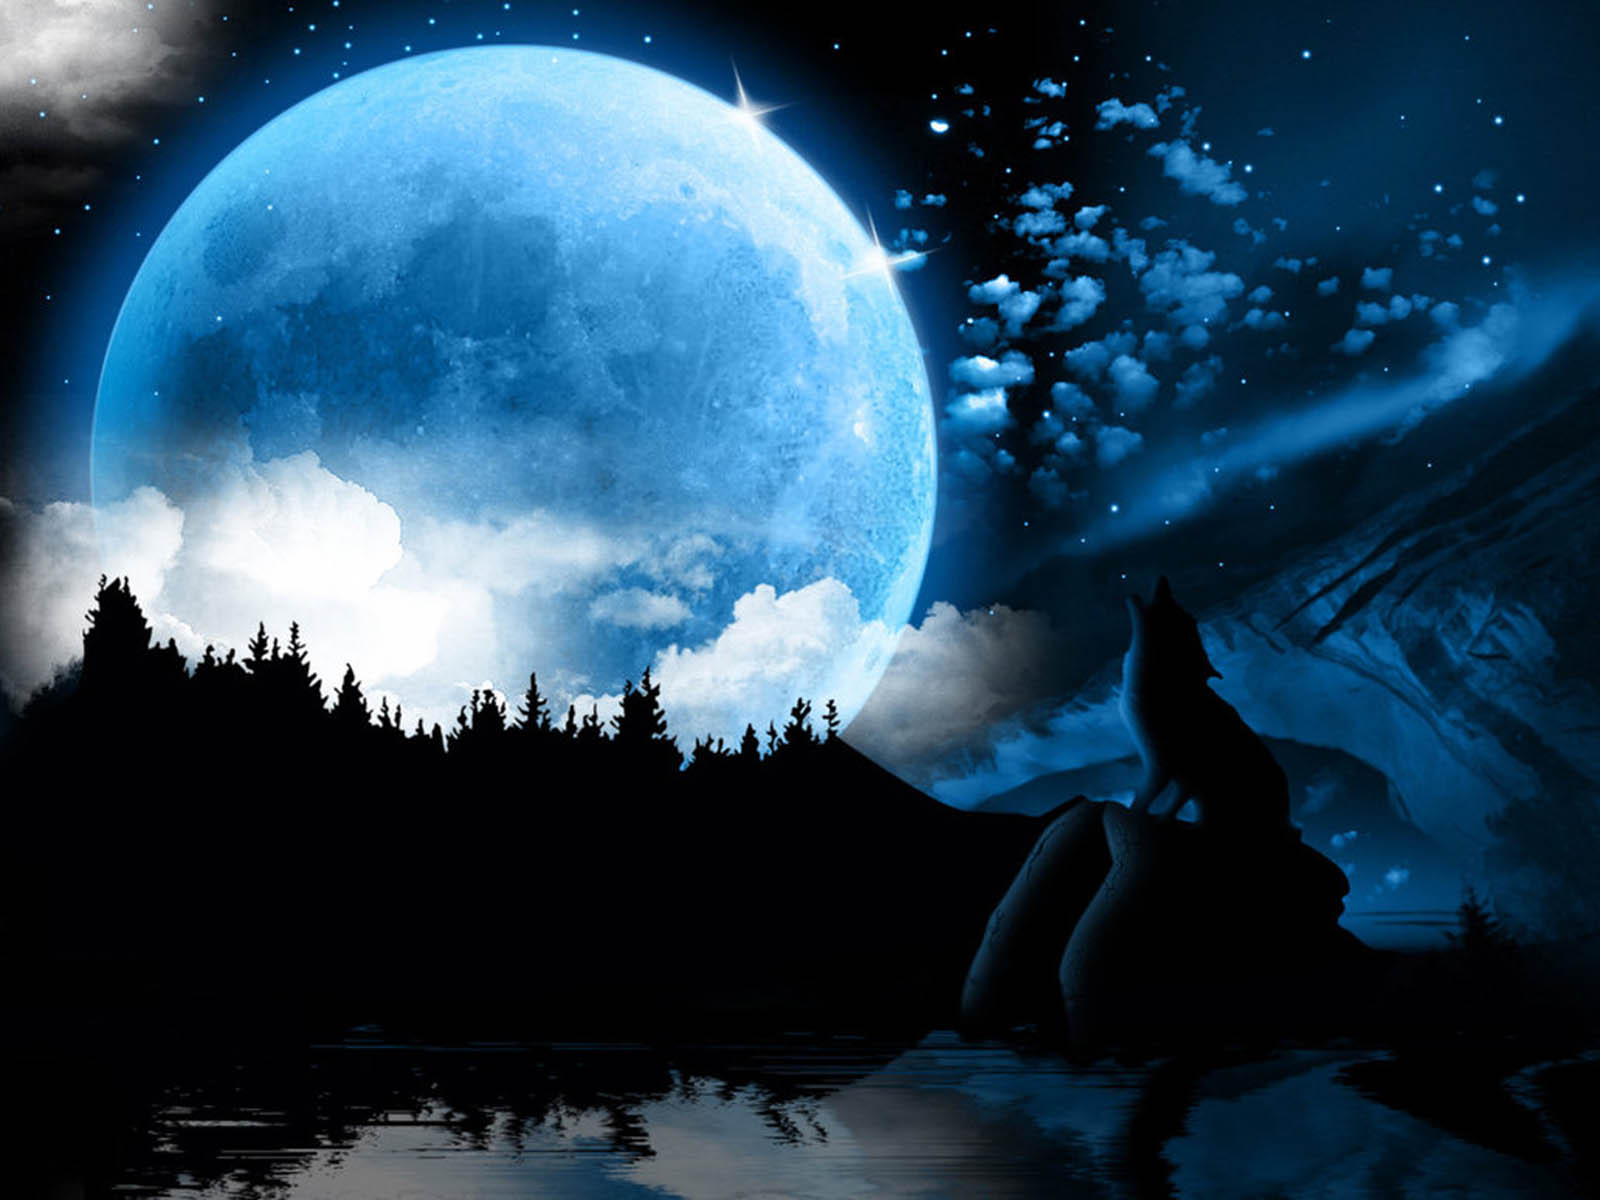 Fantasy Wallpapers Backgrounds Photos Imagesand Pictures for 1600x1200